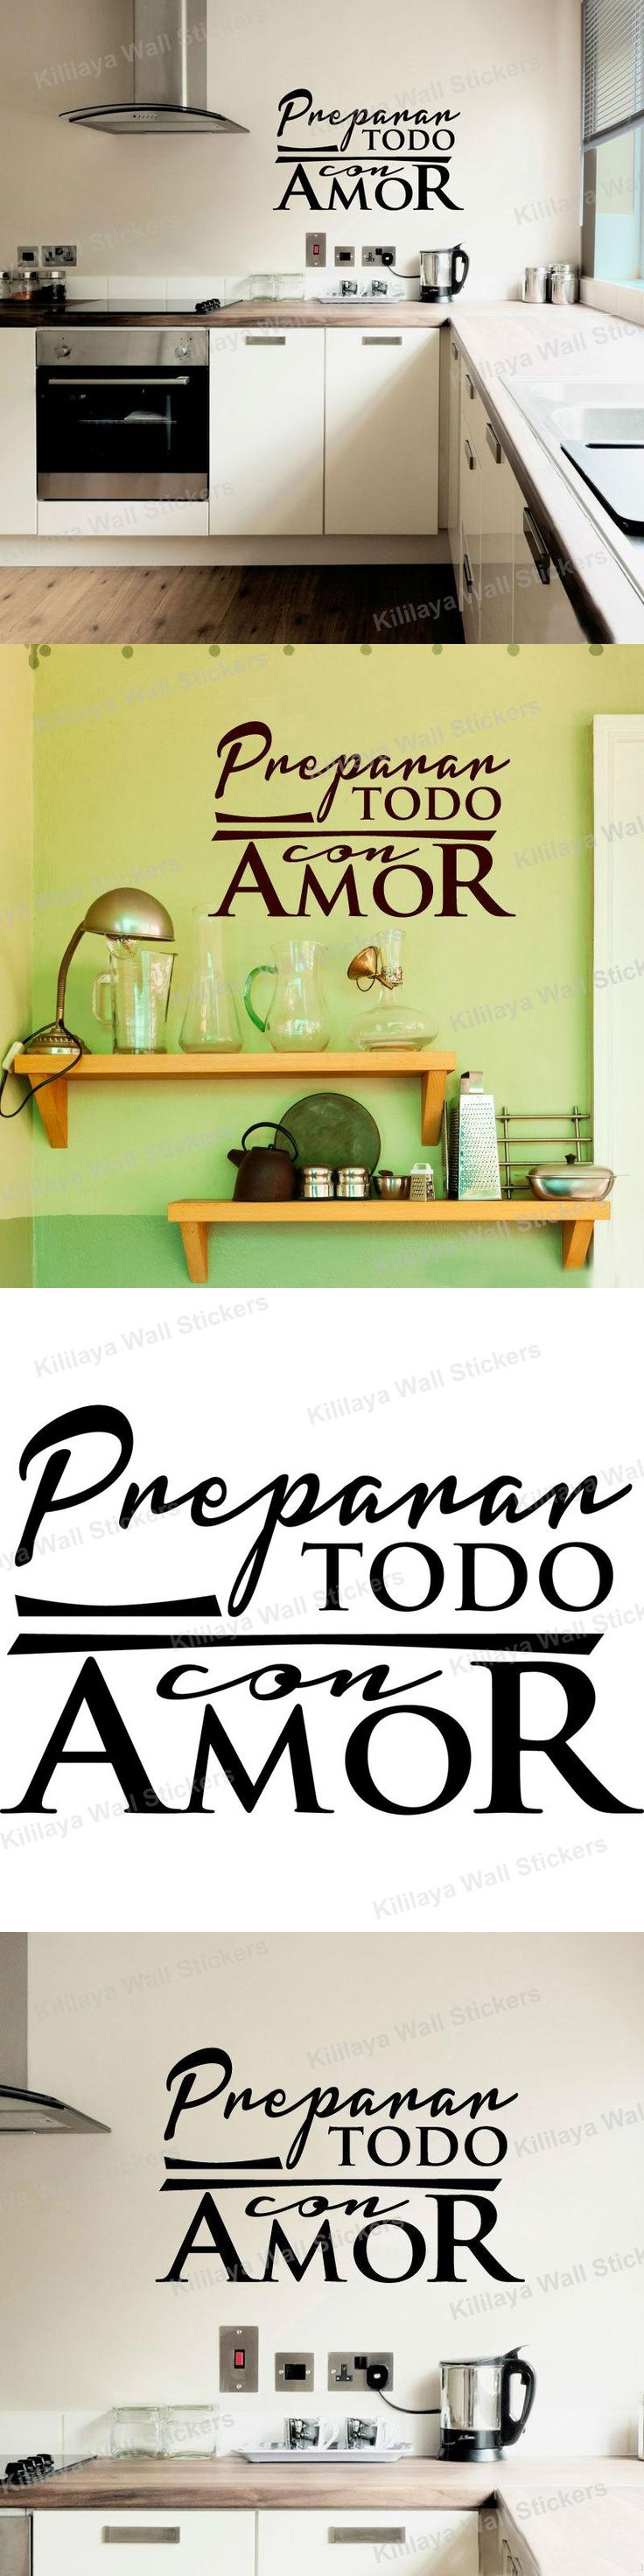 Stickers Cuisine Spanish Vinyl Wall Tile Sticker Wall Decals Quote Lettering Wallpaper for Kitchen Decoration Home Decor 35x55cm